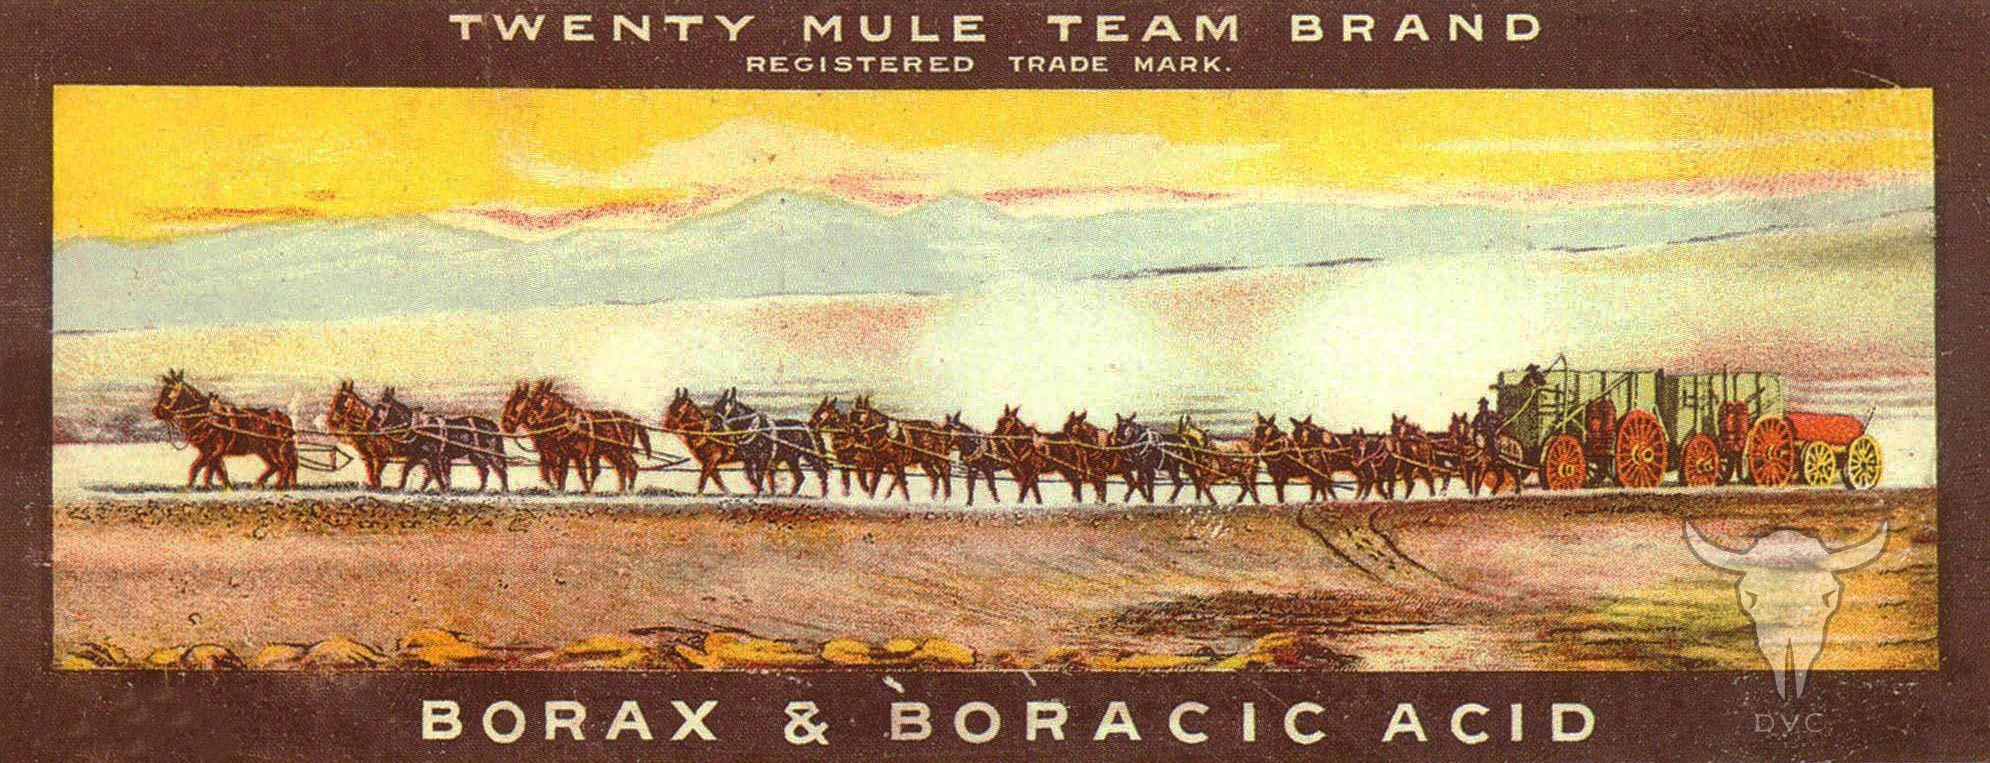 Twenty Mule Team Brand Registered Trade Mark Borax and Boracic Acid